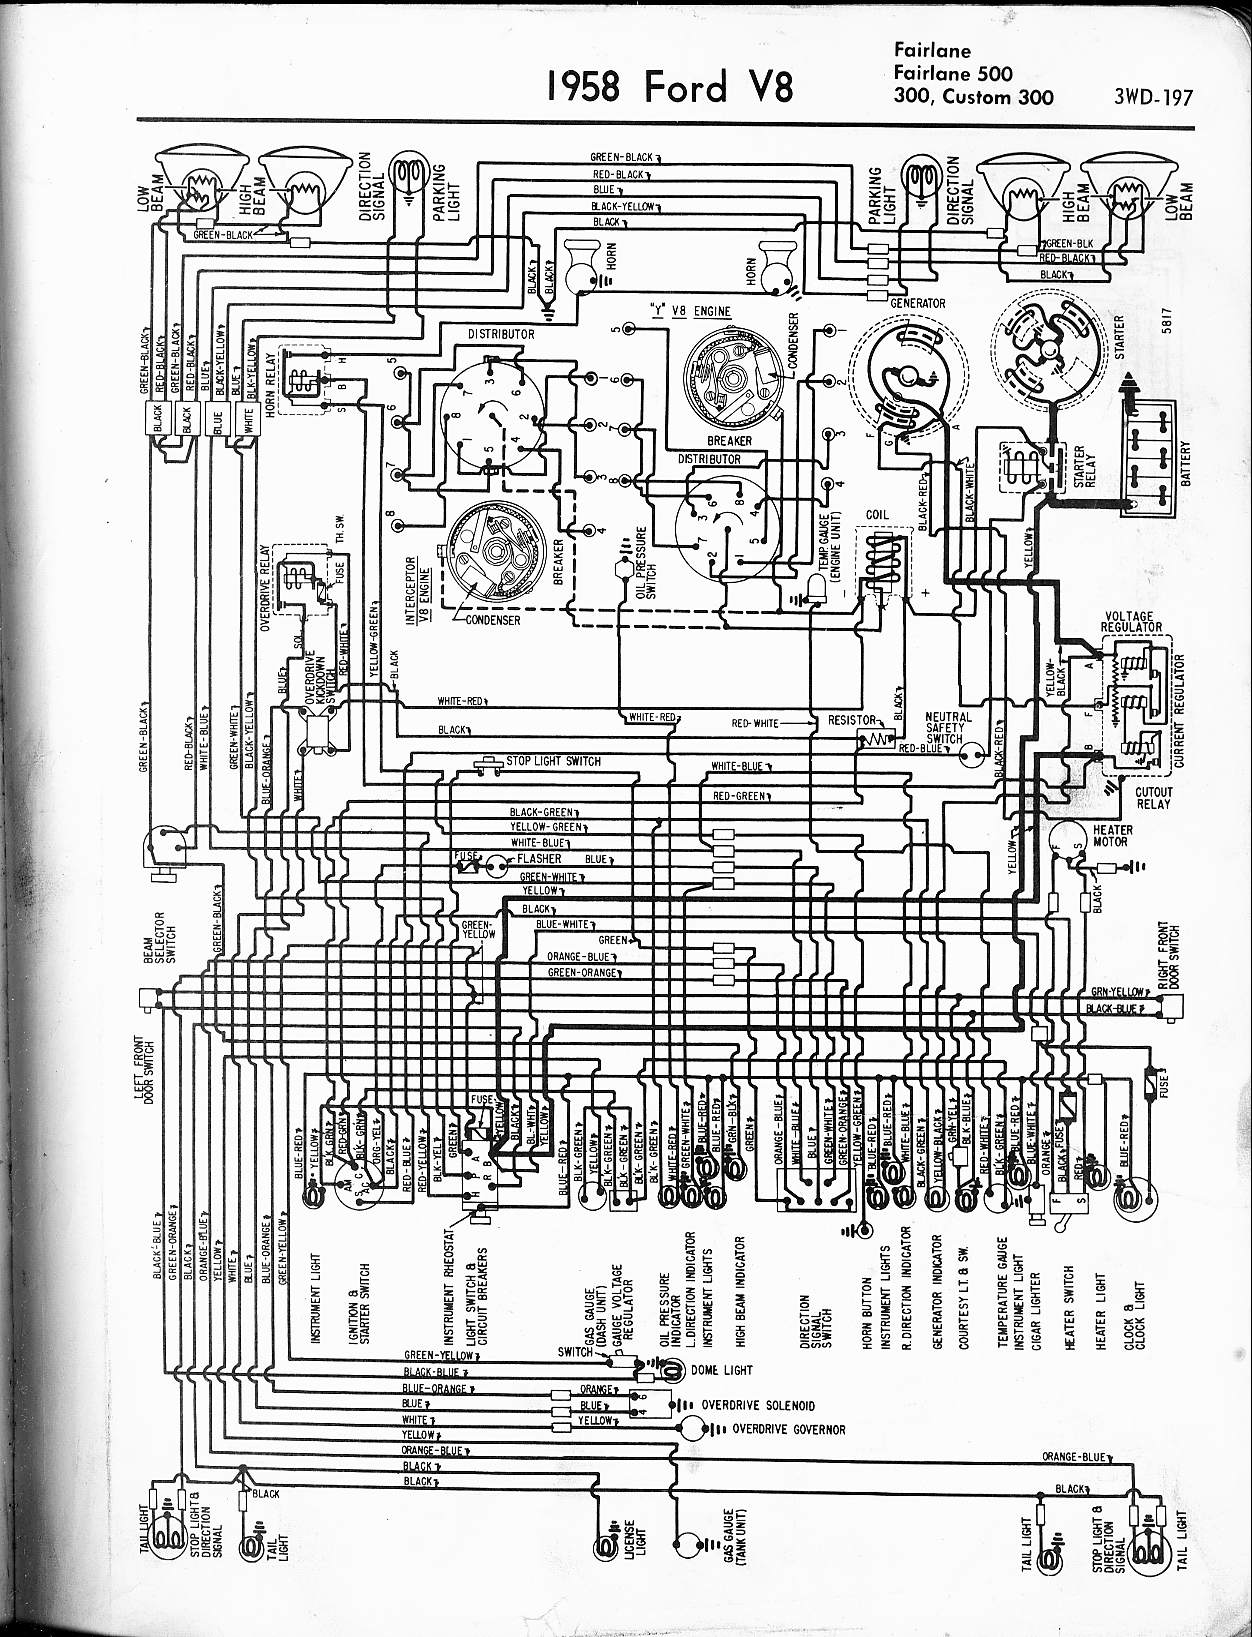 MWire5765 197 57 65 ford wiring diagrams 1971 ford torino ignition wiring diagram at bayanpartner.co